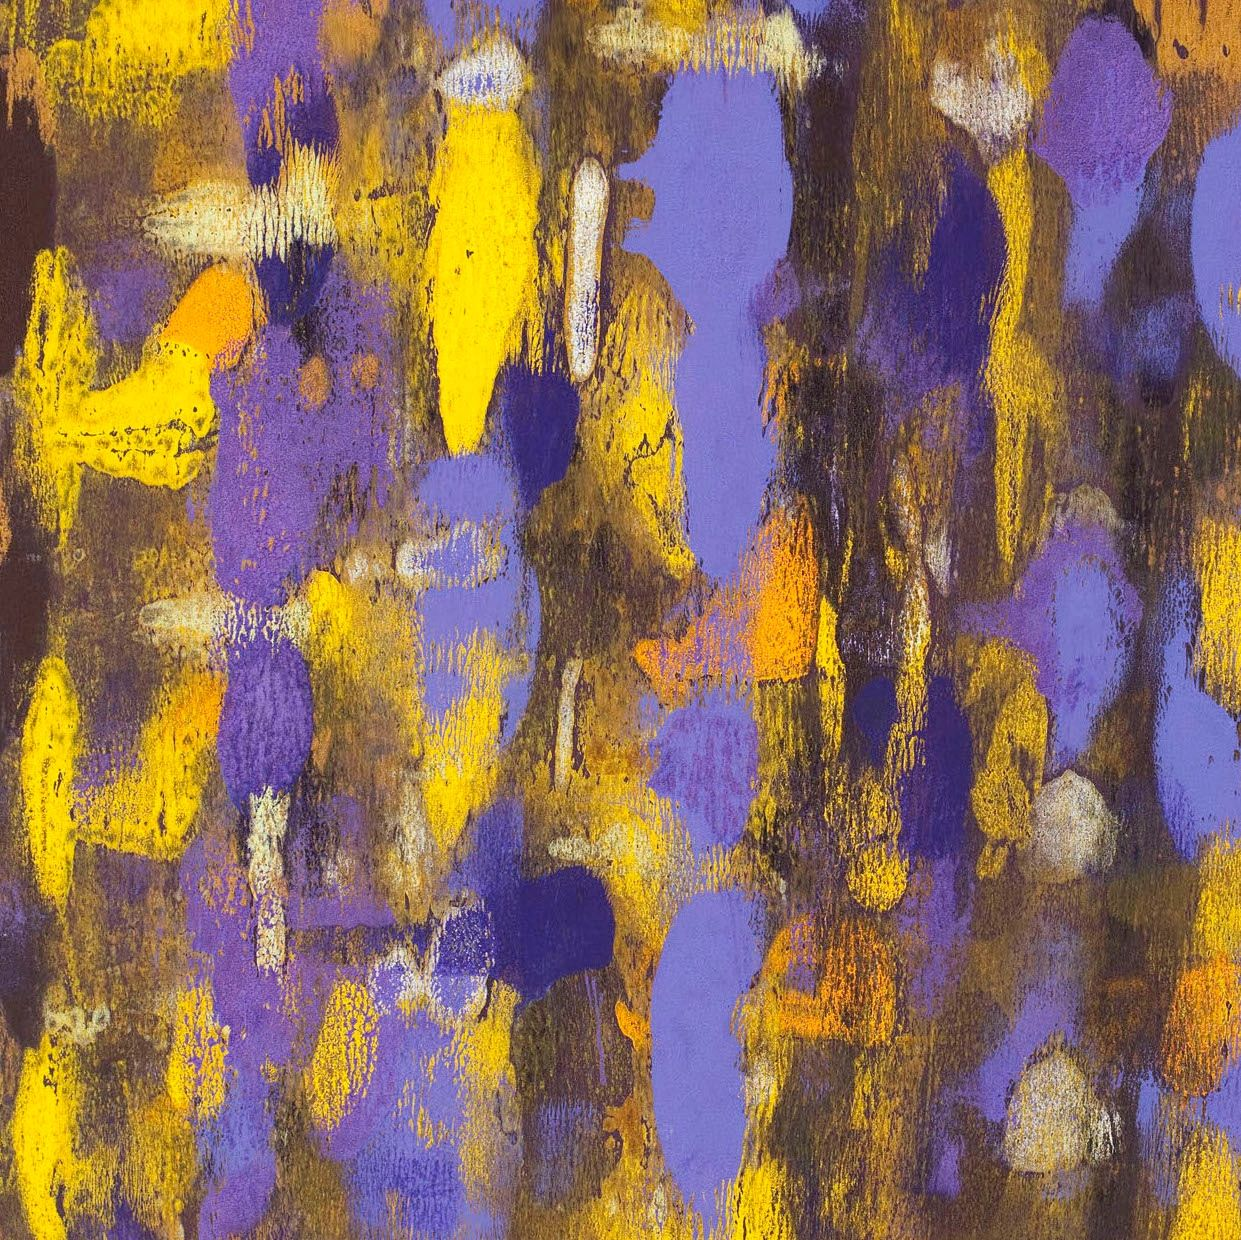 "{""blocks"":[{""key"":""89n0n"",""text"":""Purple and Yellow Abstract #1, Oil on paper 70 x 70 cm 2018"",""type"":""unstyled"",""depth"":0,""inlineStyleRanges"":[],""entityRanges"":[],""data"":{}}],""entityMap"":{}}"